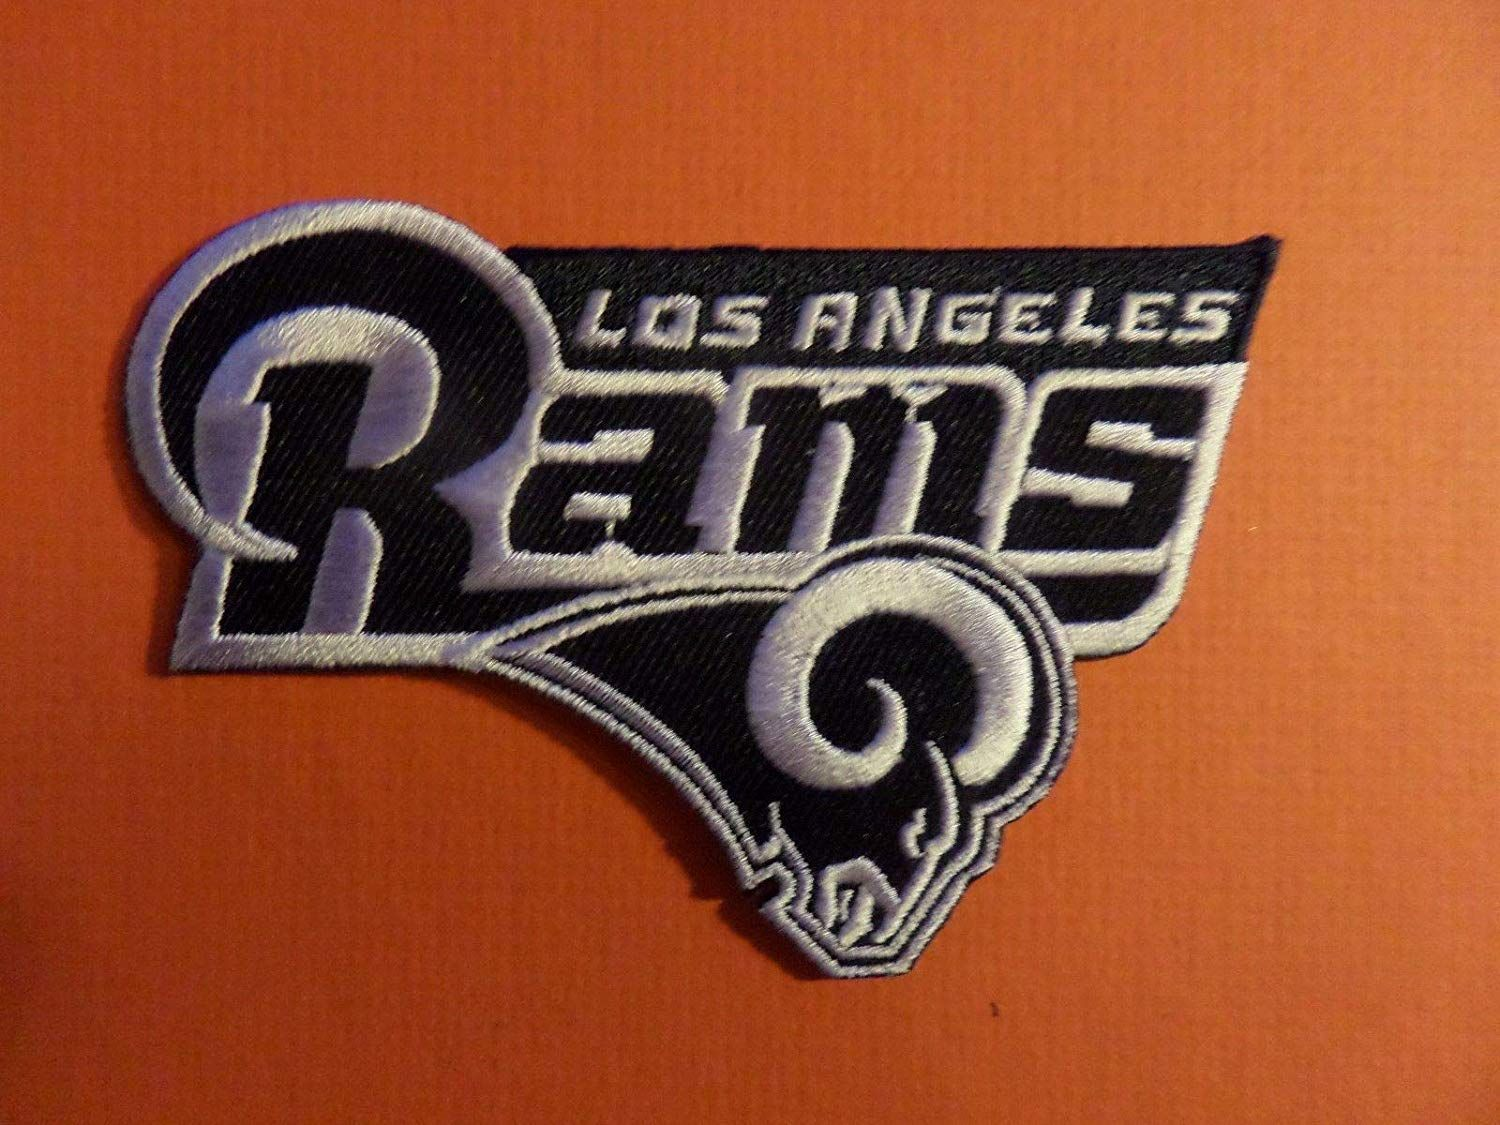 10 10 Los Angeles Rams Nfl Embroidered Iron On 2 7 8 X 4 1 4 Patch Arts Crafts Sewing Sewing Crafts Electronics Gadgets